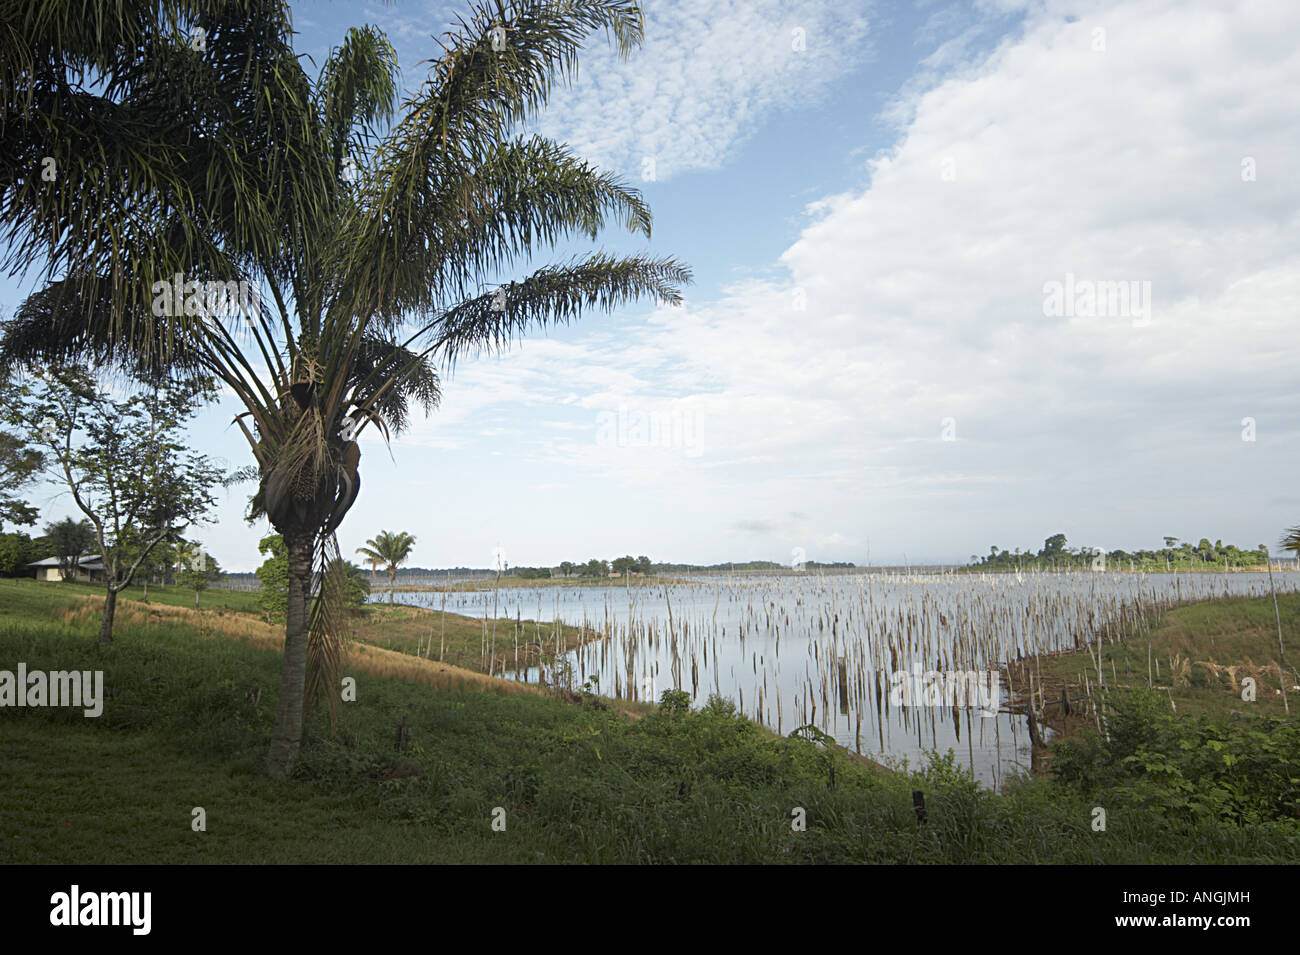 The Brokopondo reservoir in the interior of Suriname as seen from the Maroon village of Lebidoti. - Stock Image